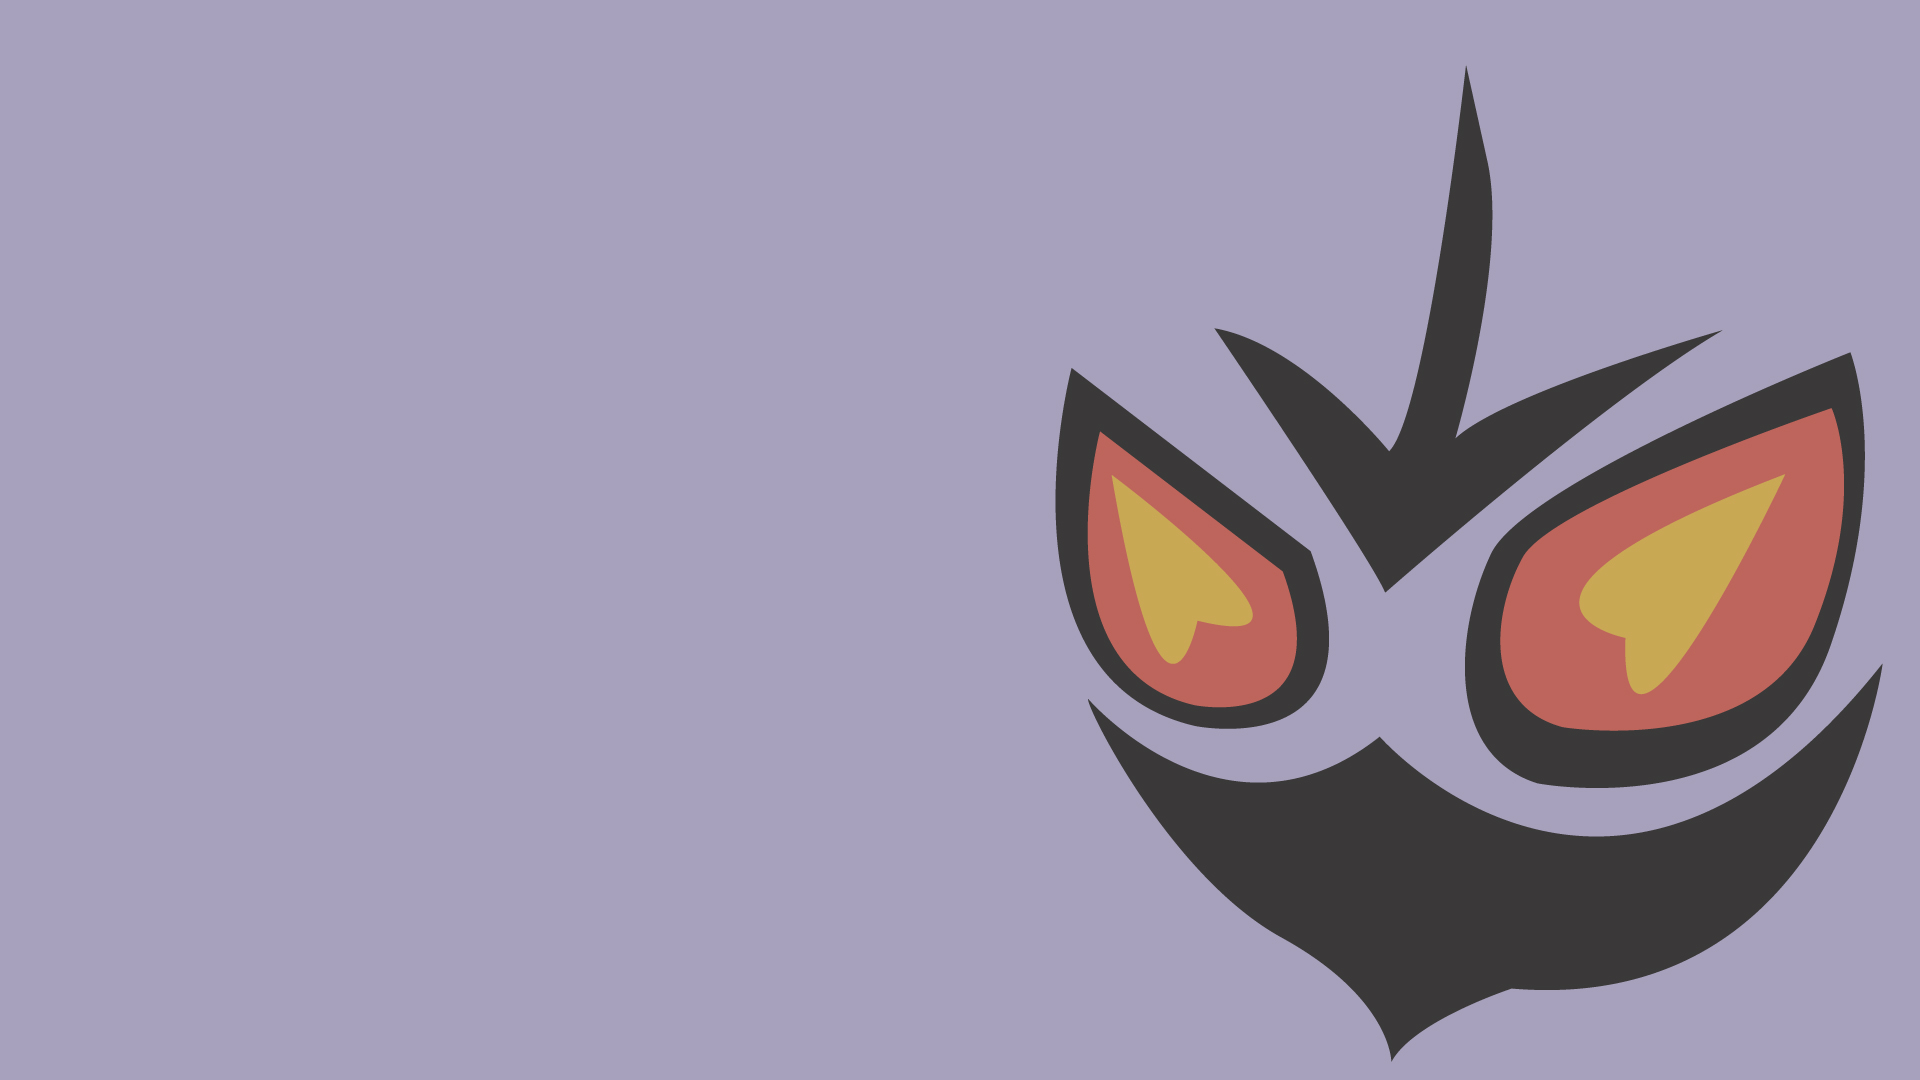 #024 Arbok Art, Sprites, & Wallpapers - SpriteDex ...